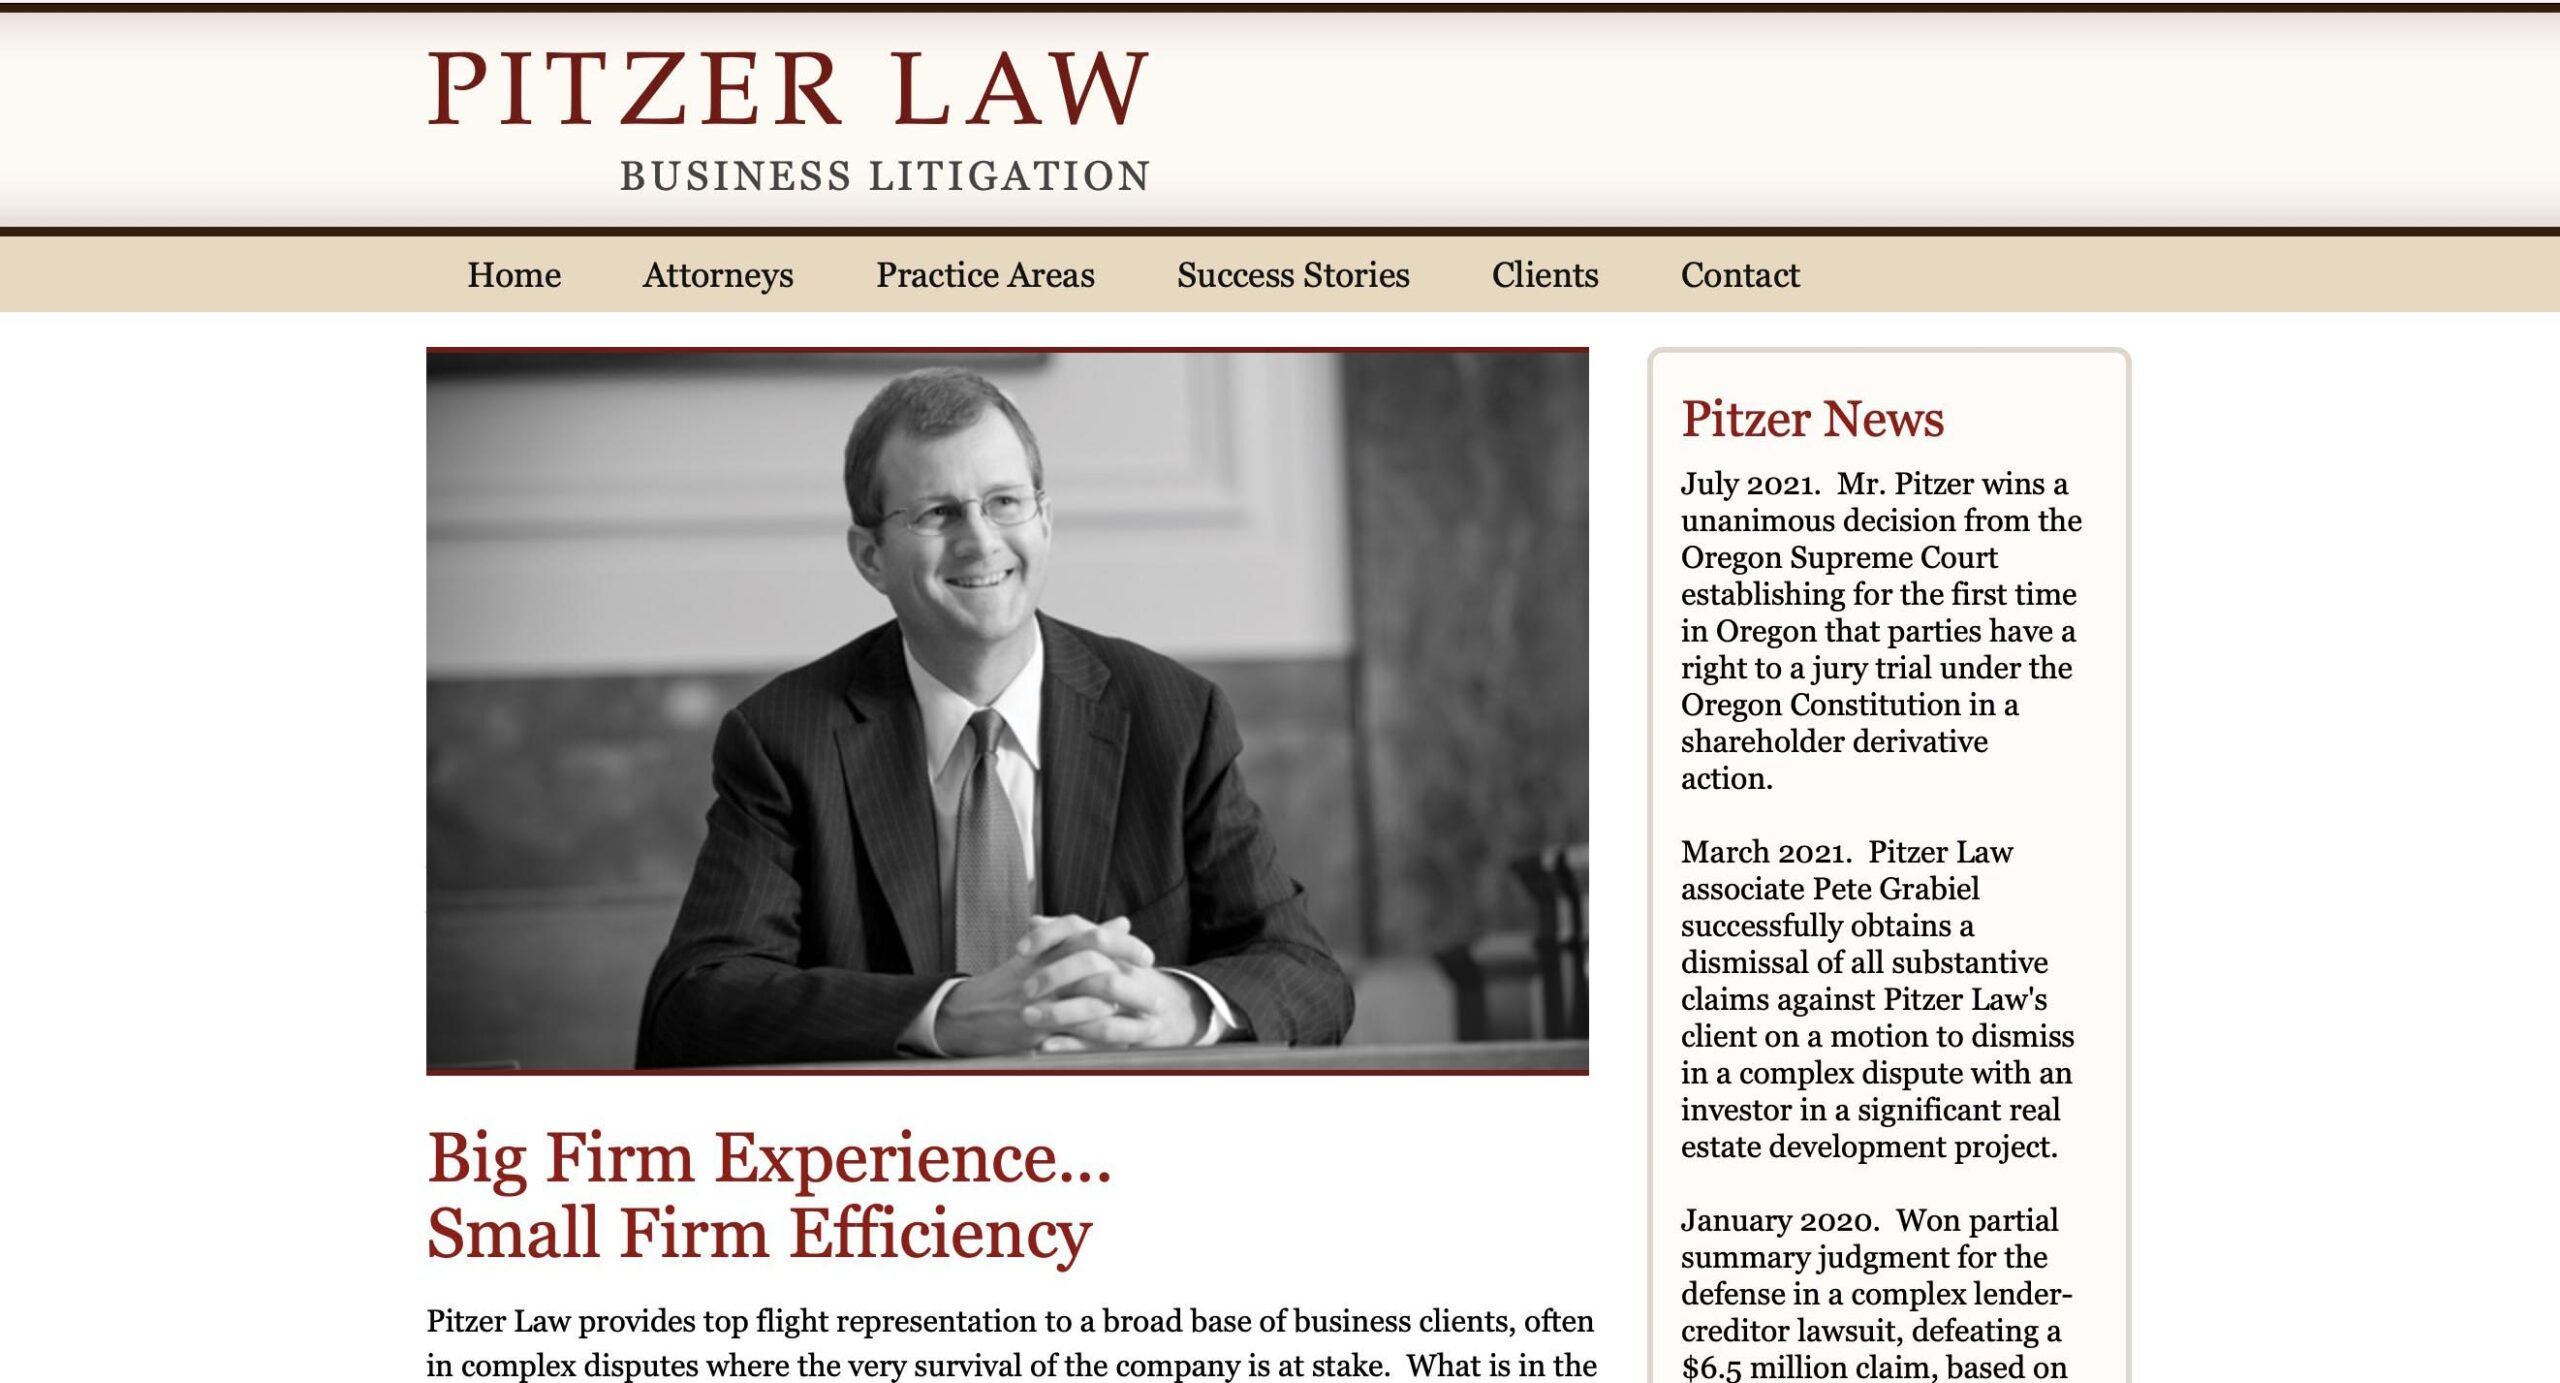 Marketing consultant - website developer project for Pitzer Law